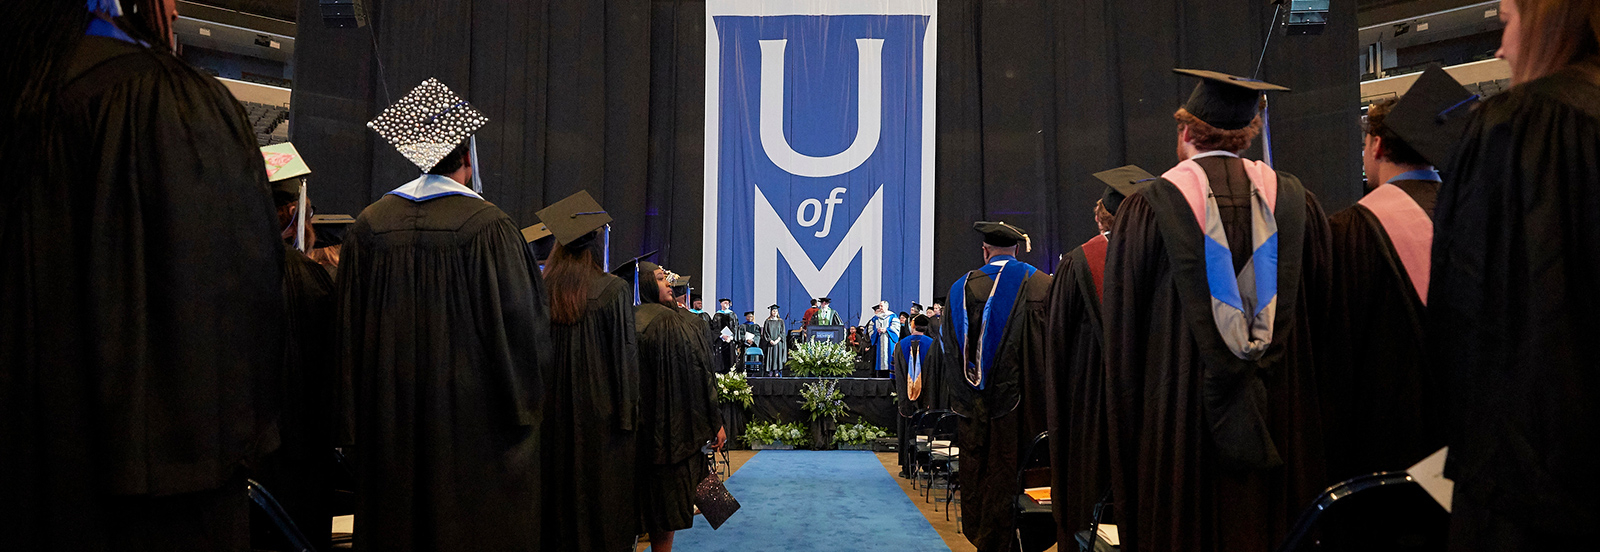 Mgmt - Mgmt - The University Of Memphis With Regard To University Of Memphis Academic Calendar